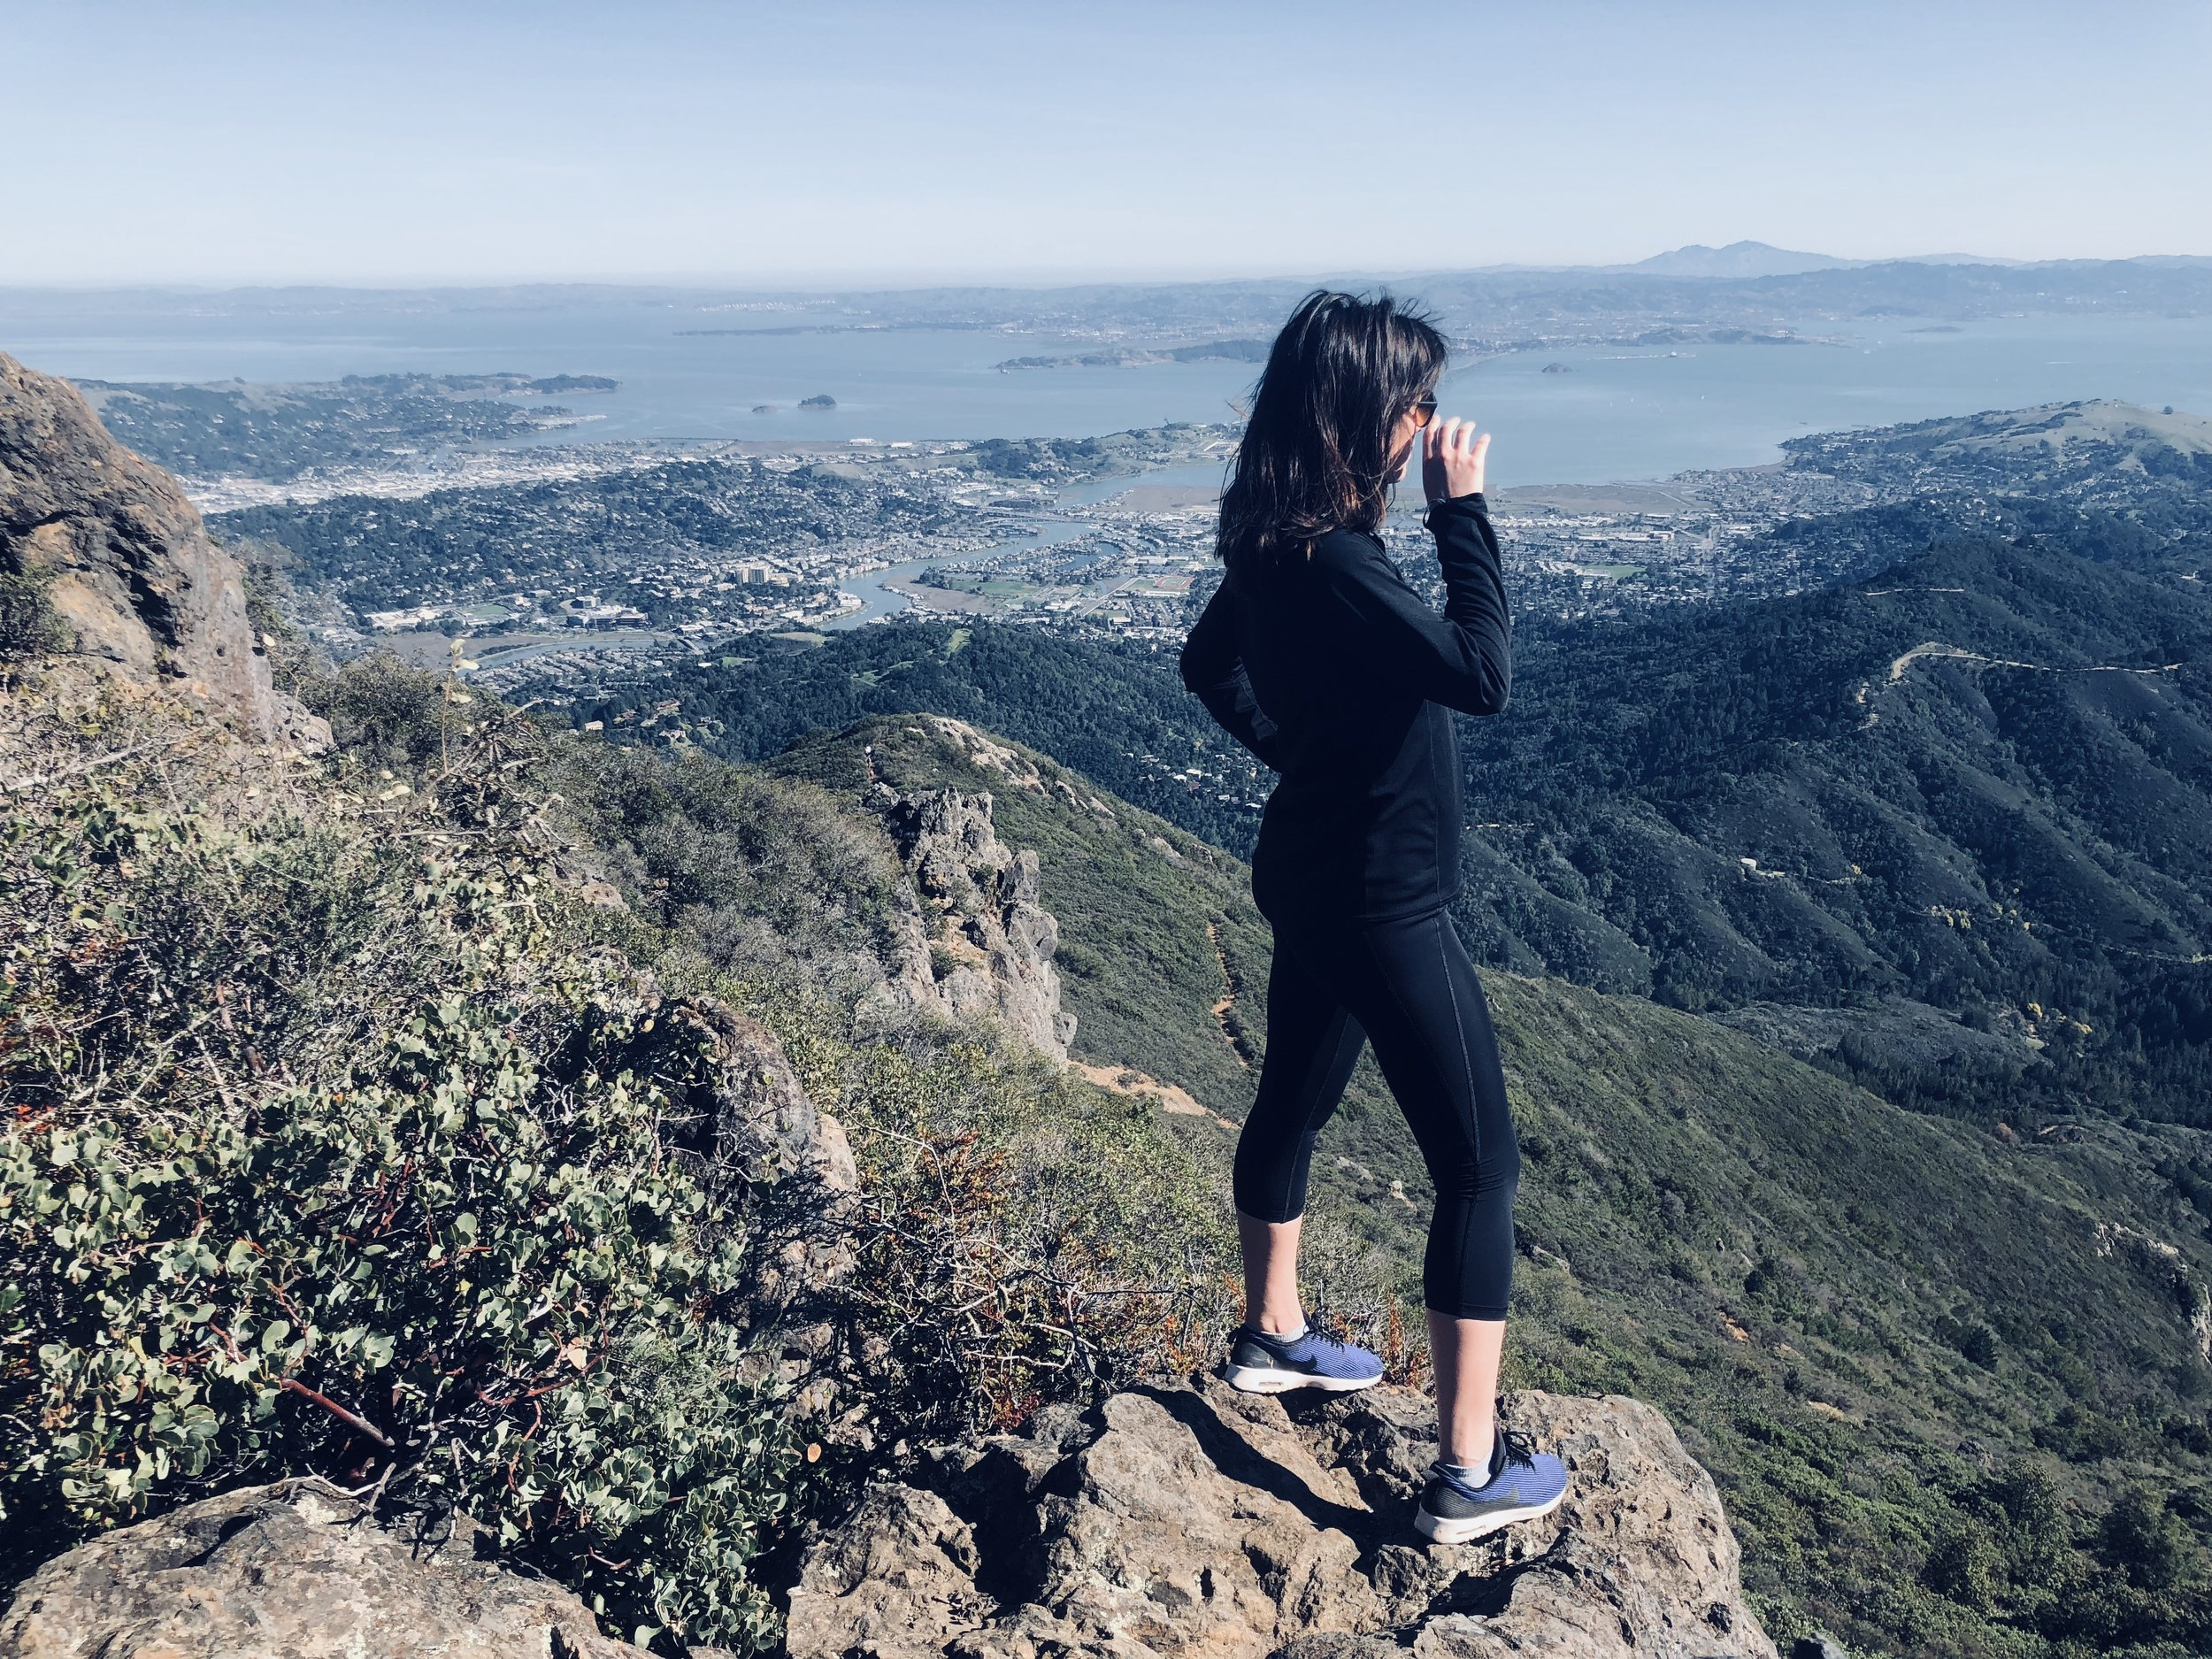 Ashley on top of Mount Tam, a favorite hike north of San Francisco